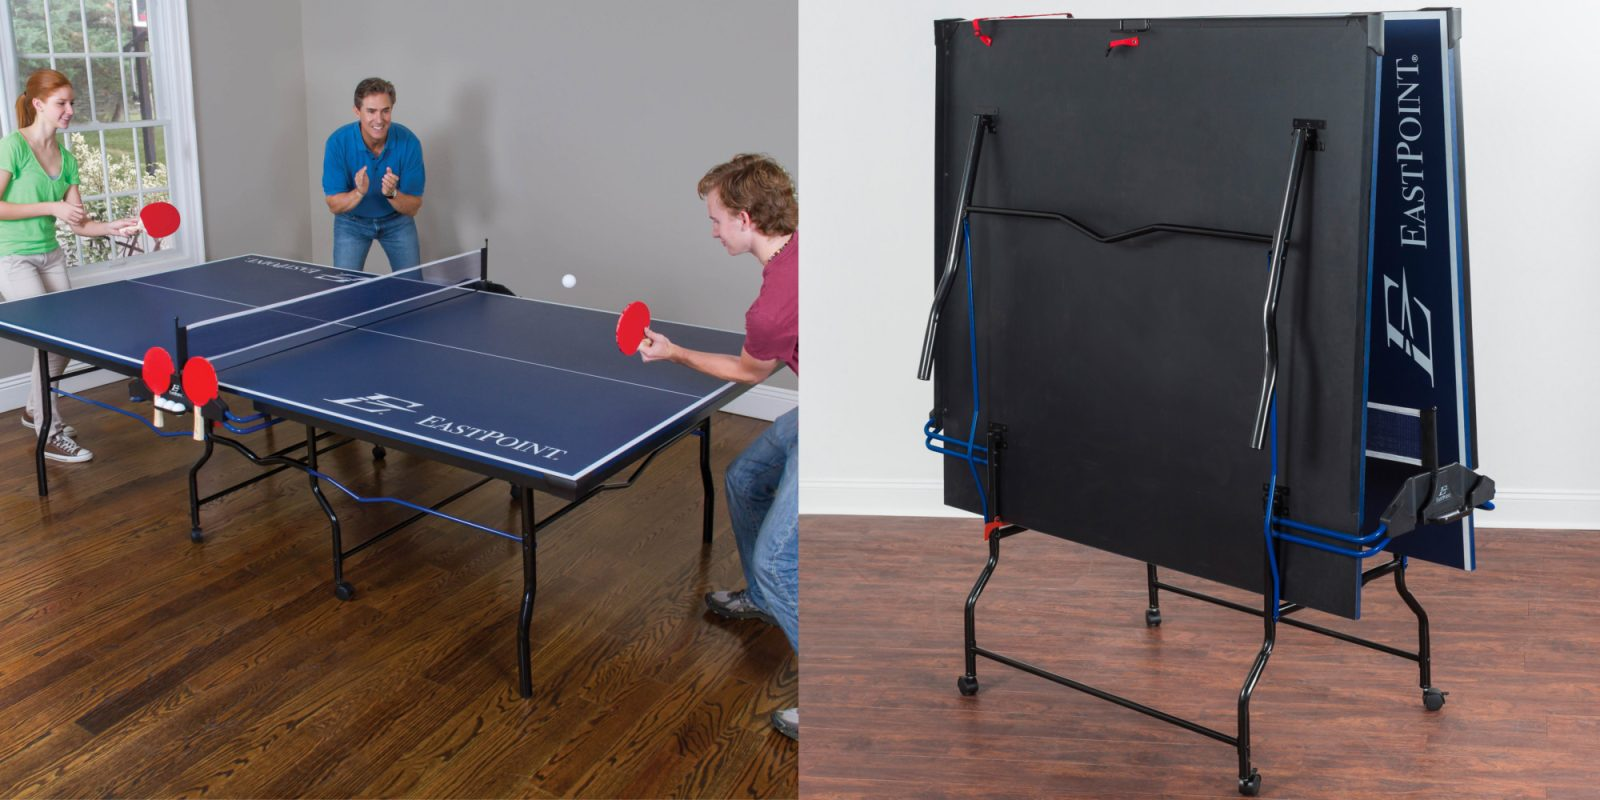 Eastpoint S 9 X 5 Foot Ping Pong Table Drops To 115 Shipped